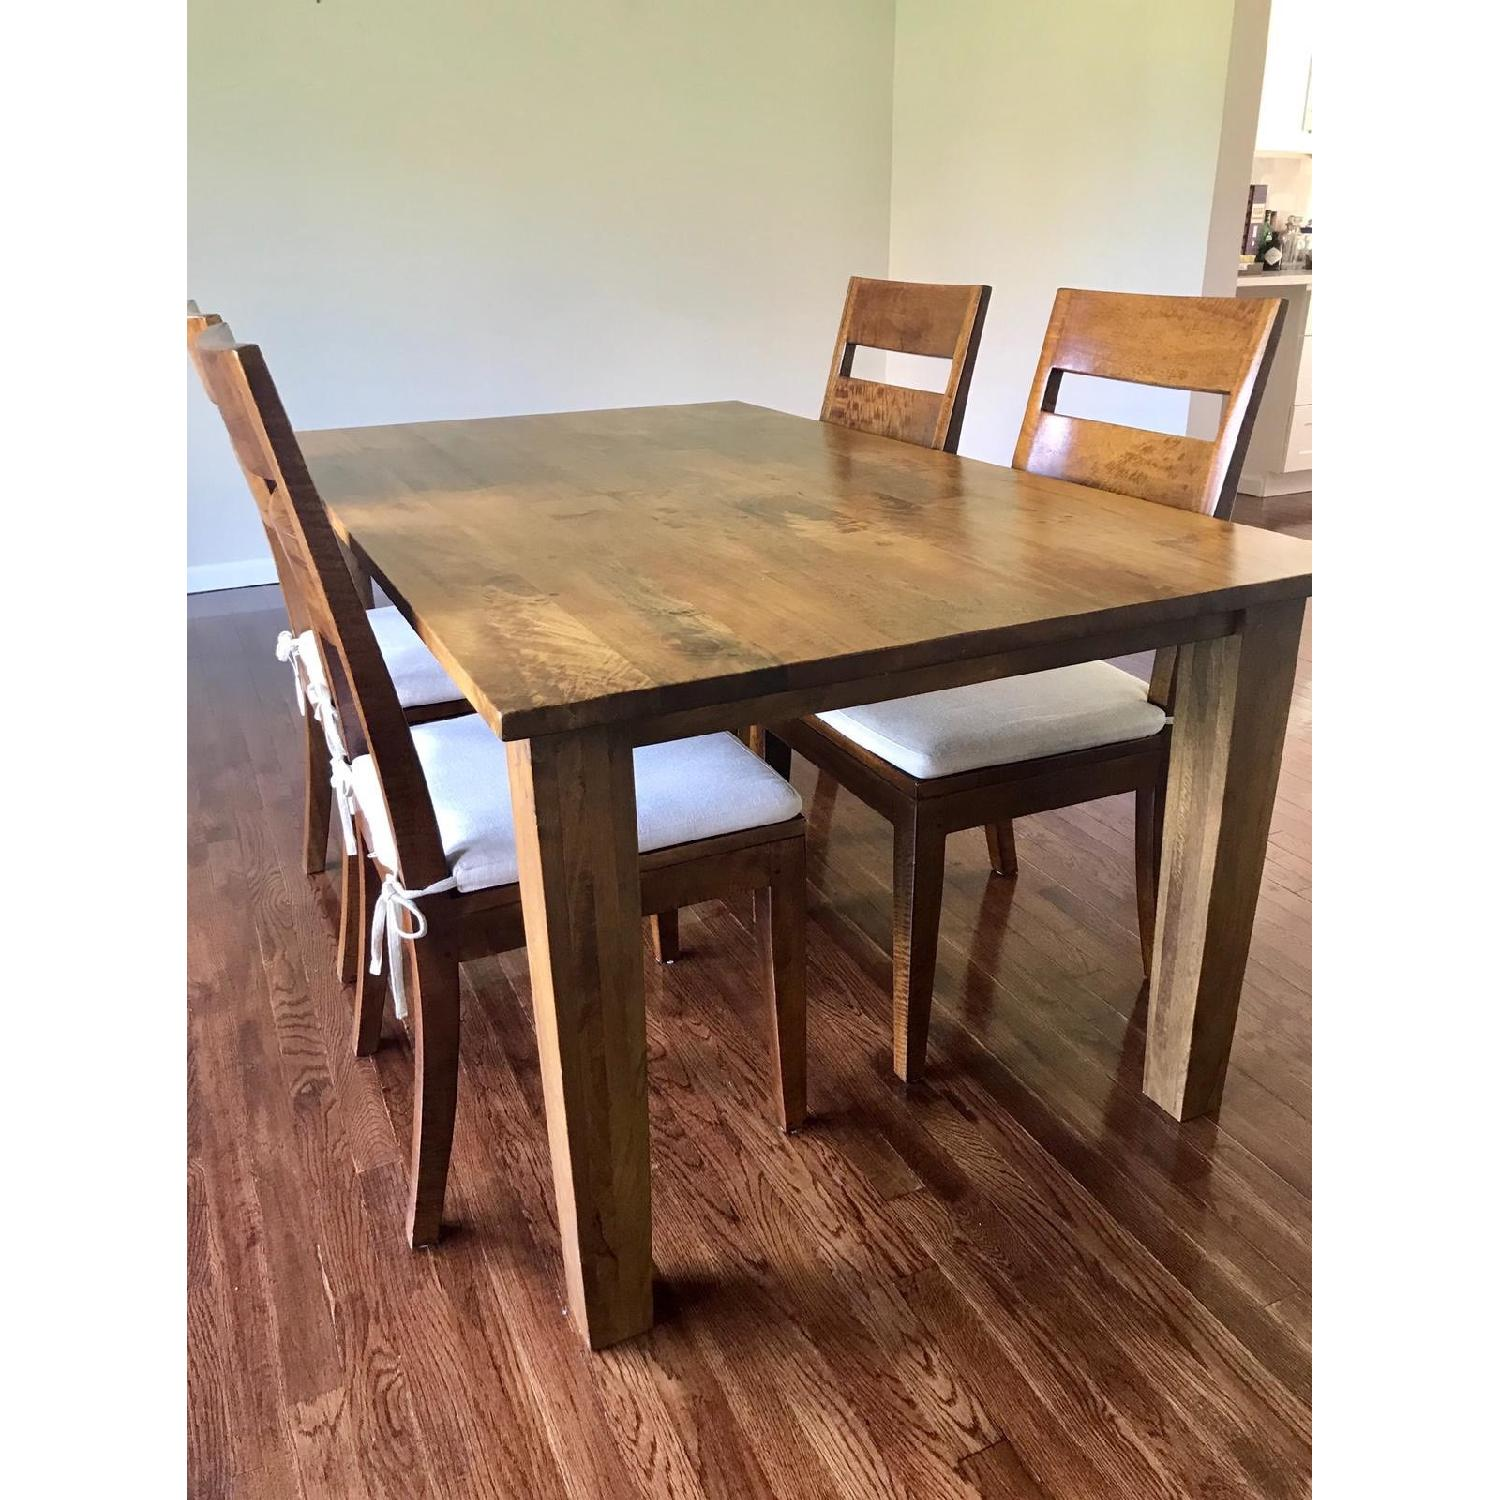 Crate & Barrel Basque Honey Dining Table w/ 4 Chairs - image-1